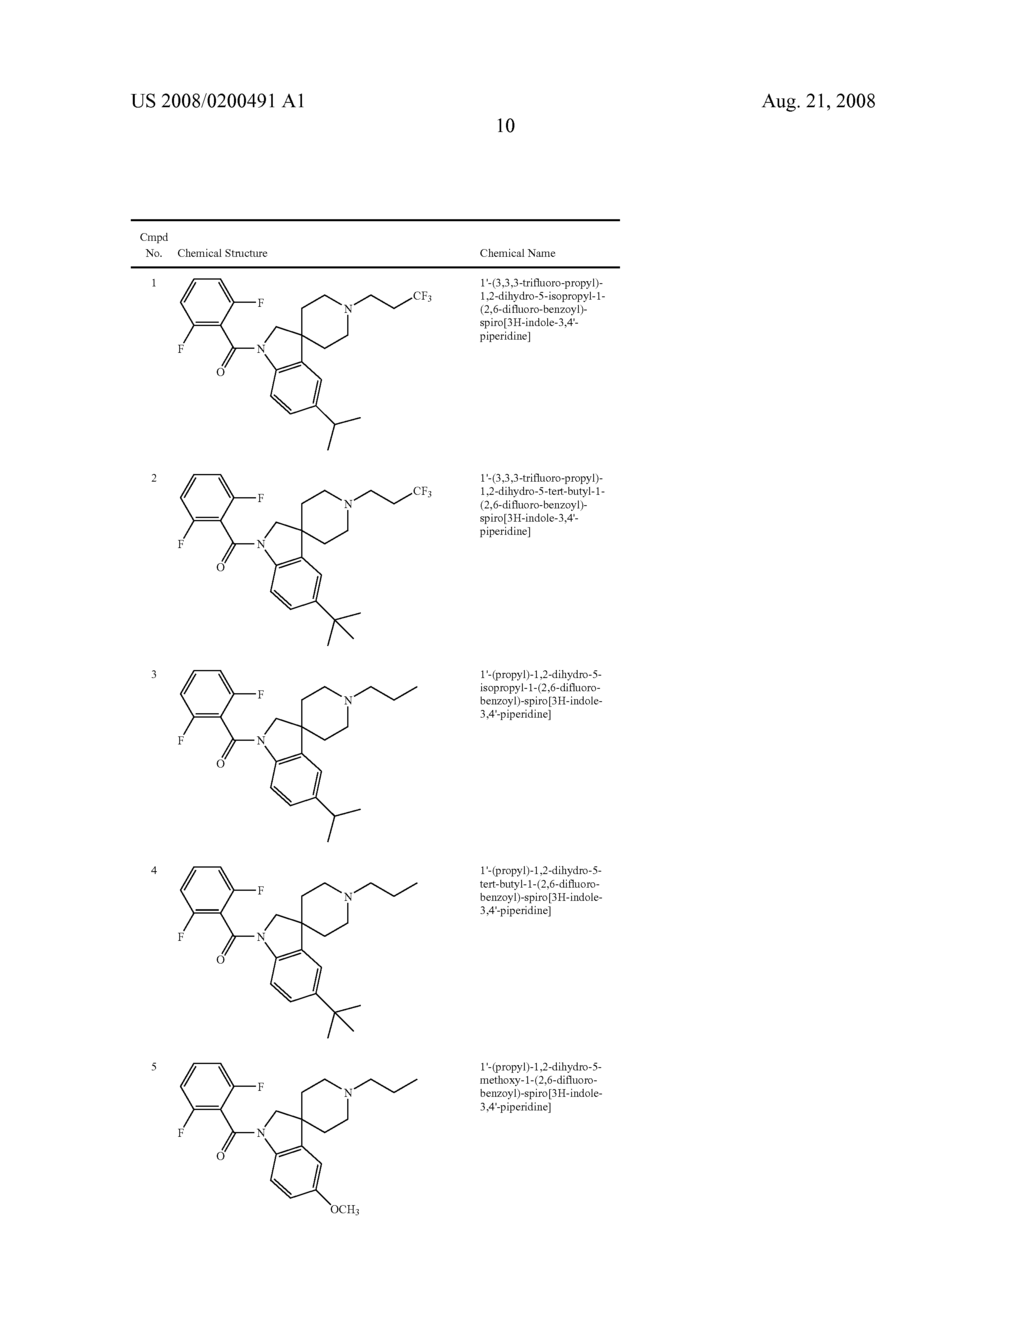 1,2-Dihydro-Spiro[3H-Indole-3,4'-Piperidine] Compounds, as Modulators of the Mas Receptor Novel - diagram, schematic, and image 17